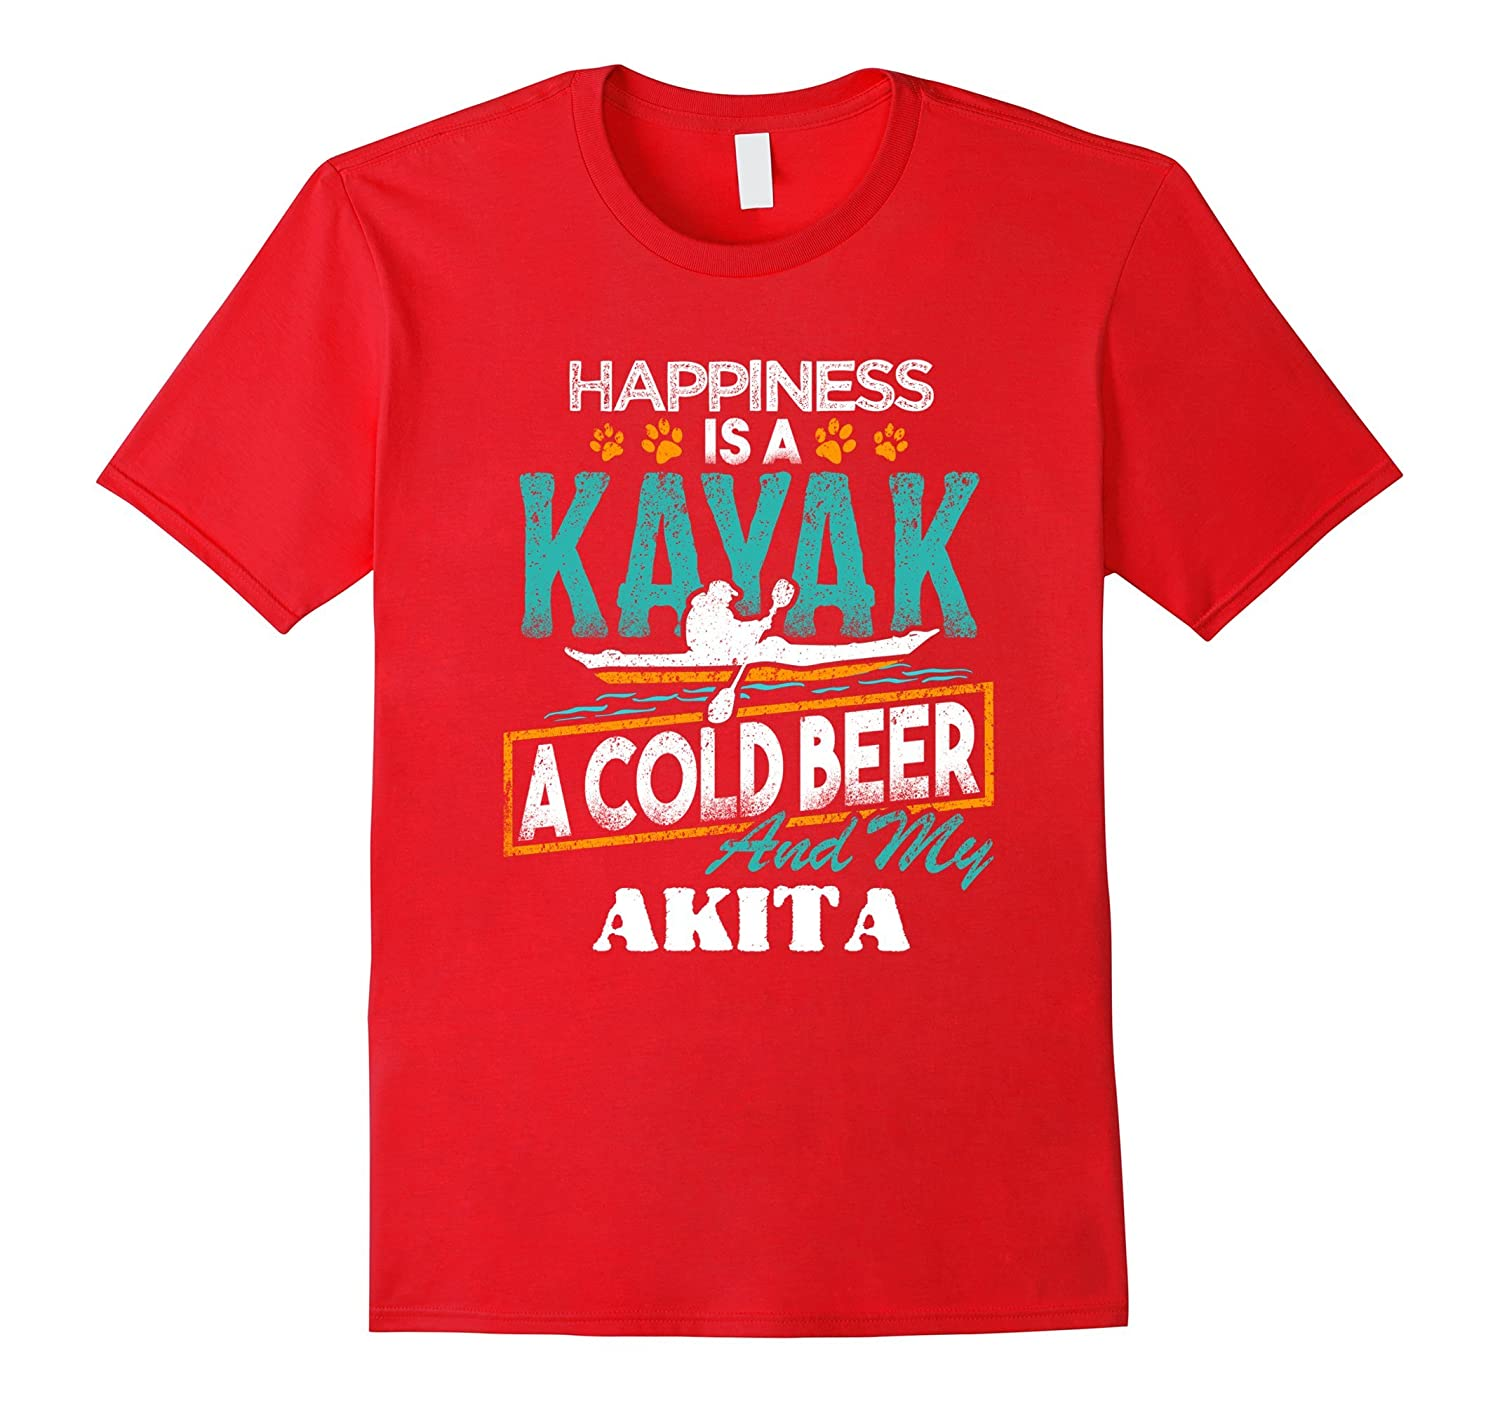 Happiness is a Kayak Cold Beer My Akita T-Shirt-FL